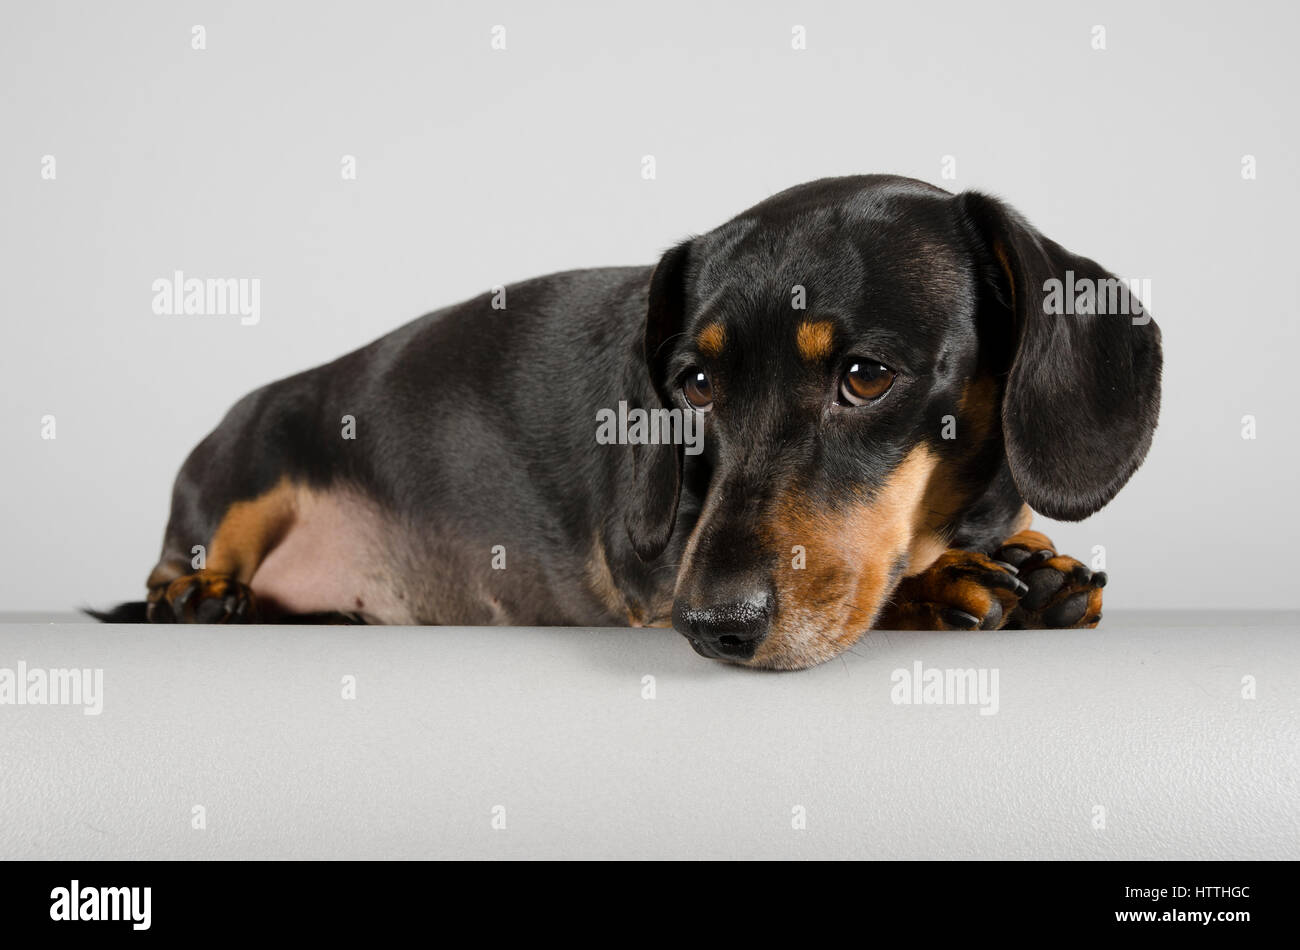 Pet photographed in front of a grey background - Stock Image